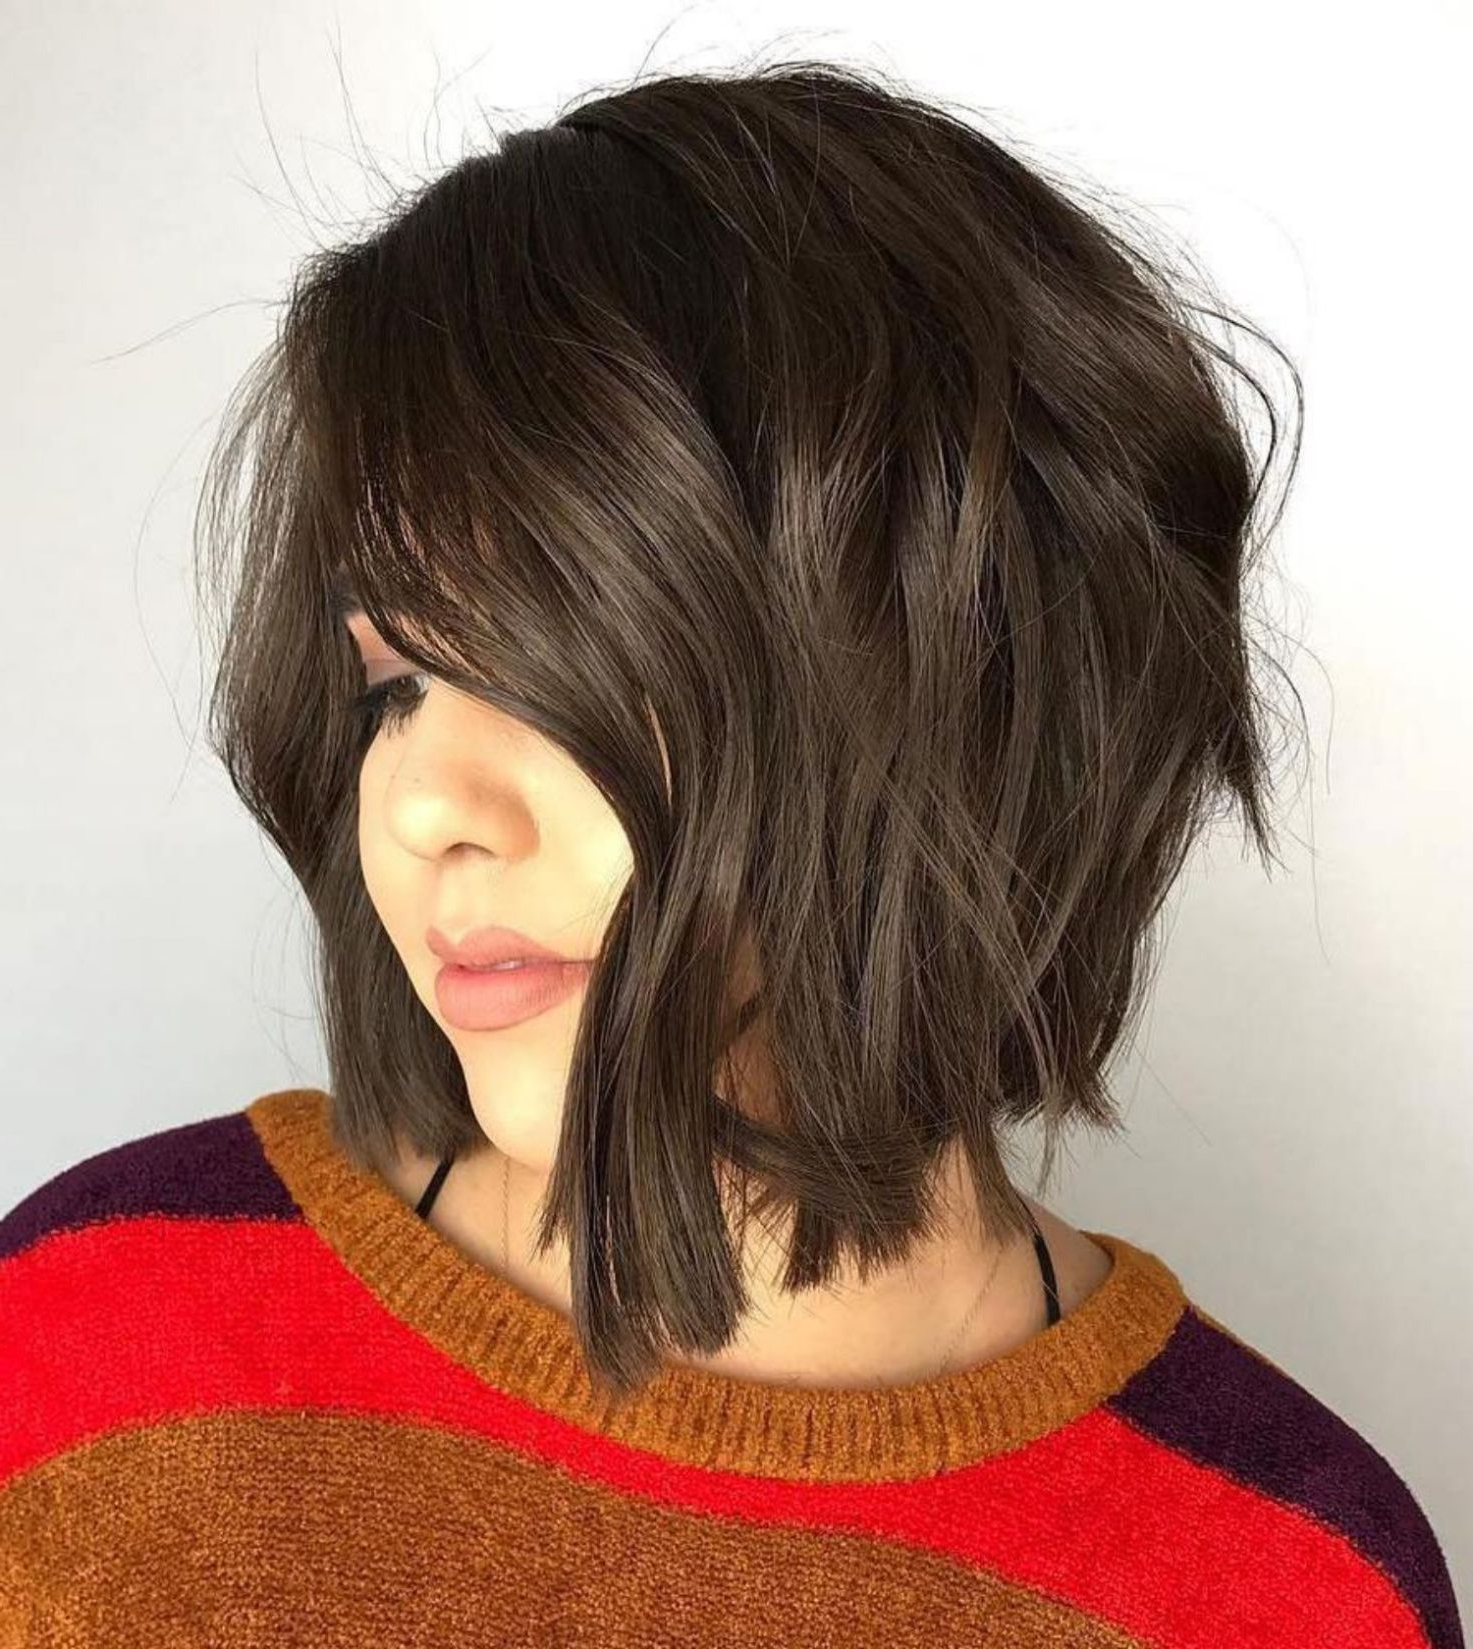 50 Super Cute Looks With Short Hairstyles For Round Faces In Pertaining To Purple Tinted Off Centered Bob Hairstyles (View 16 of 20)